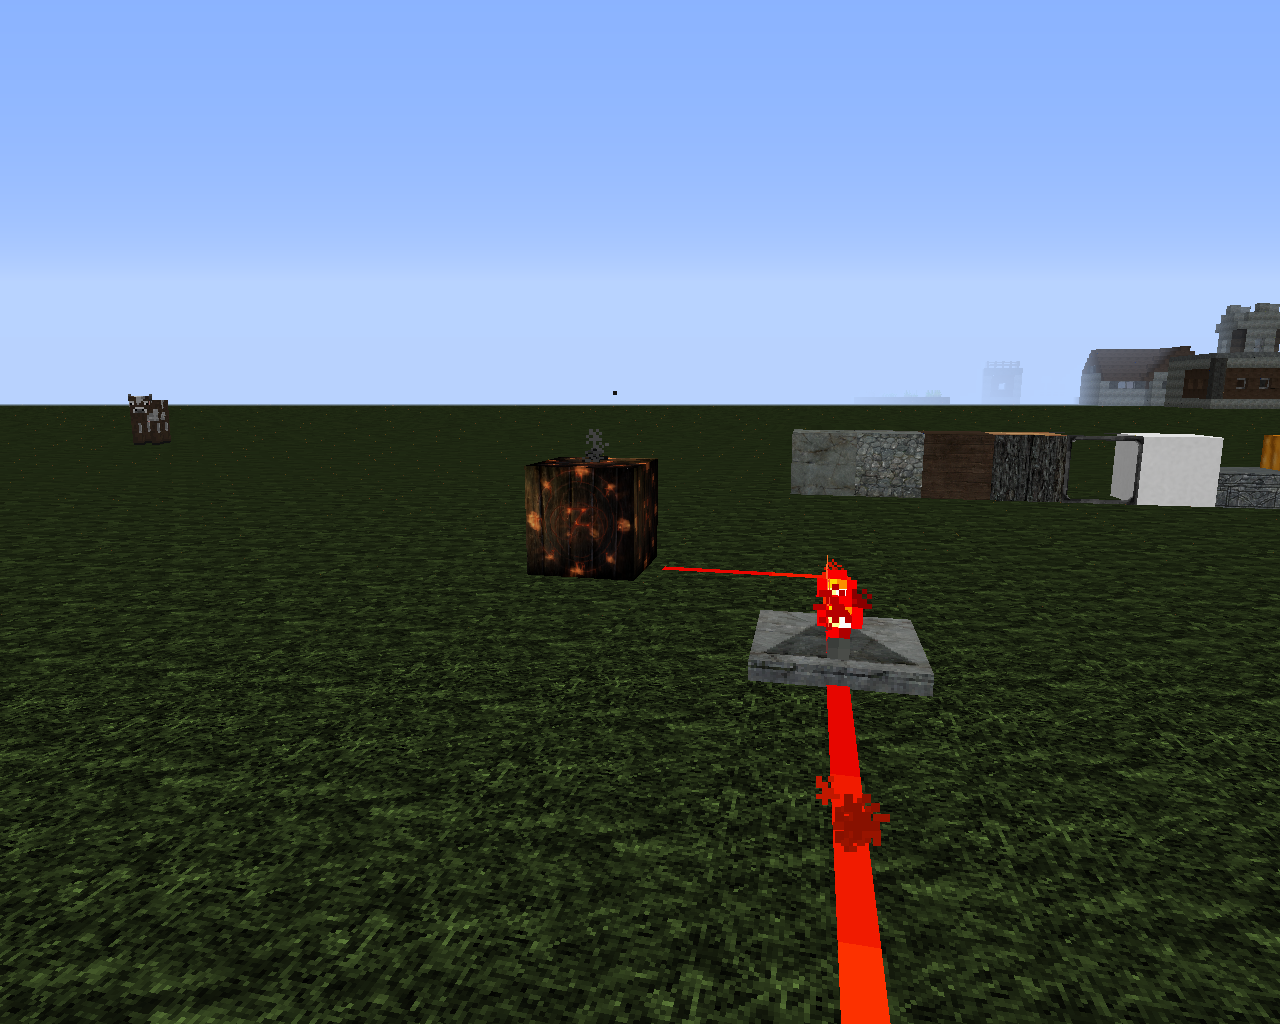 fr-minecraft_texture_73DH_2014-03-07-10-50-31.png